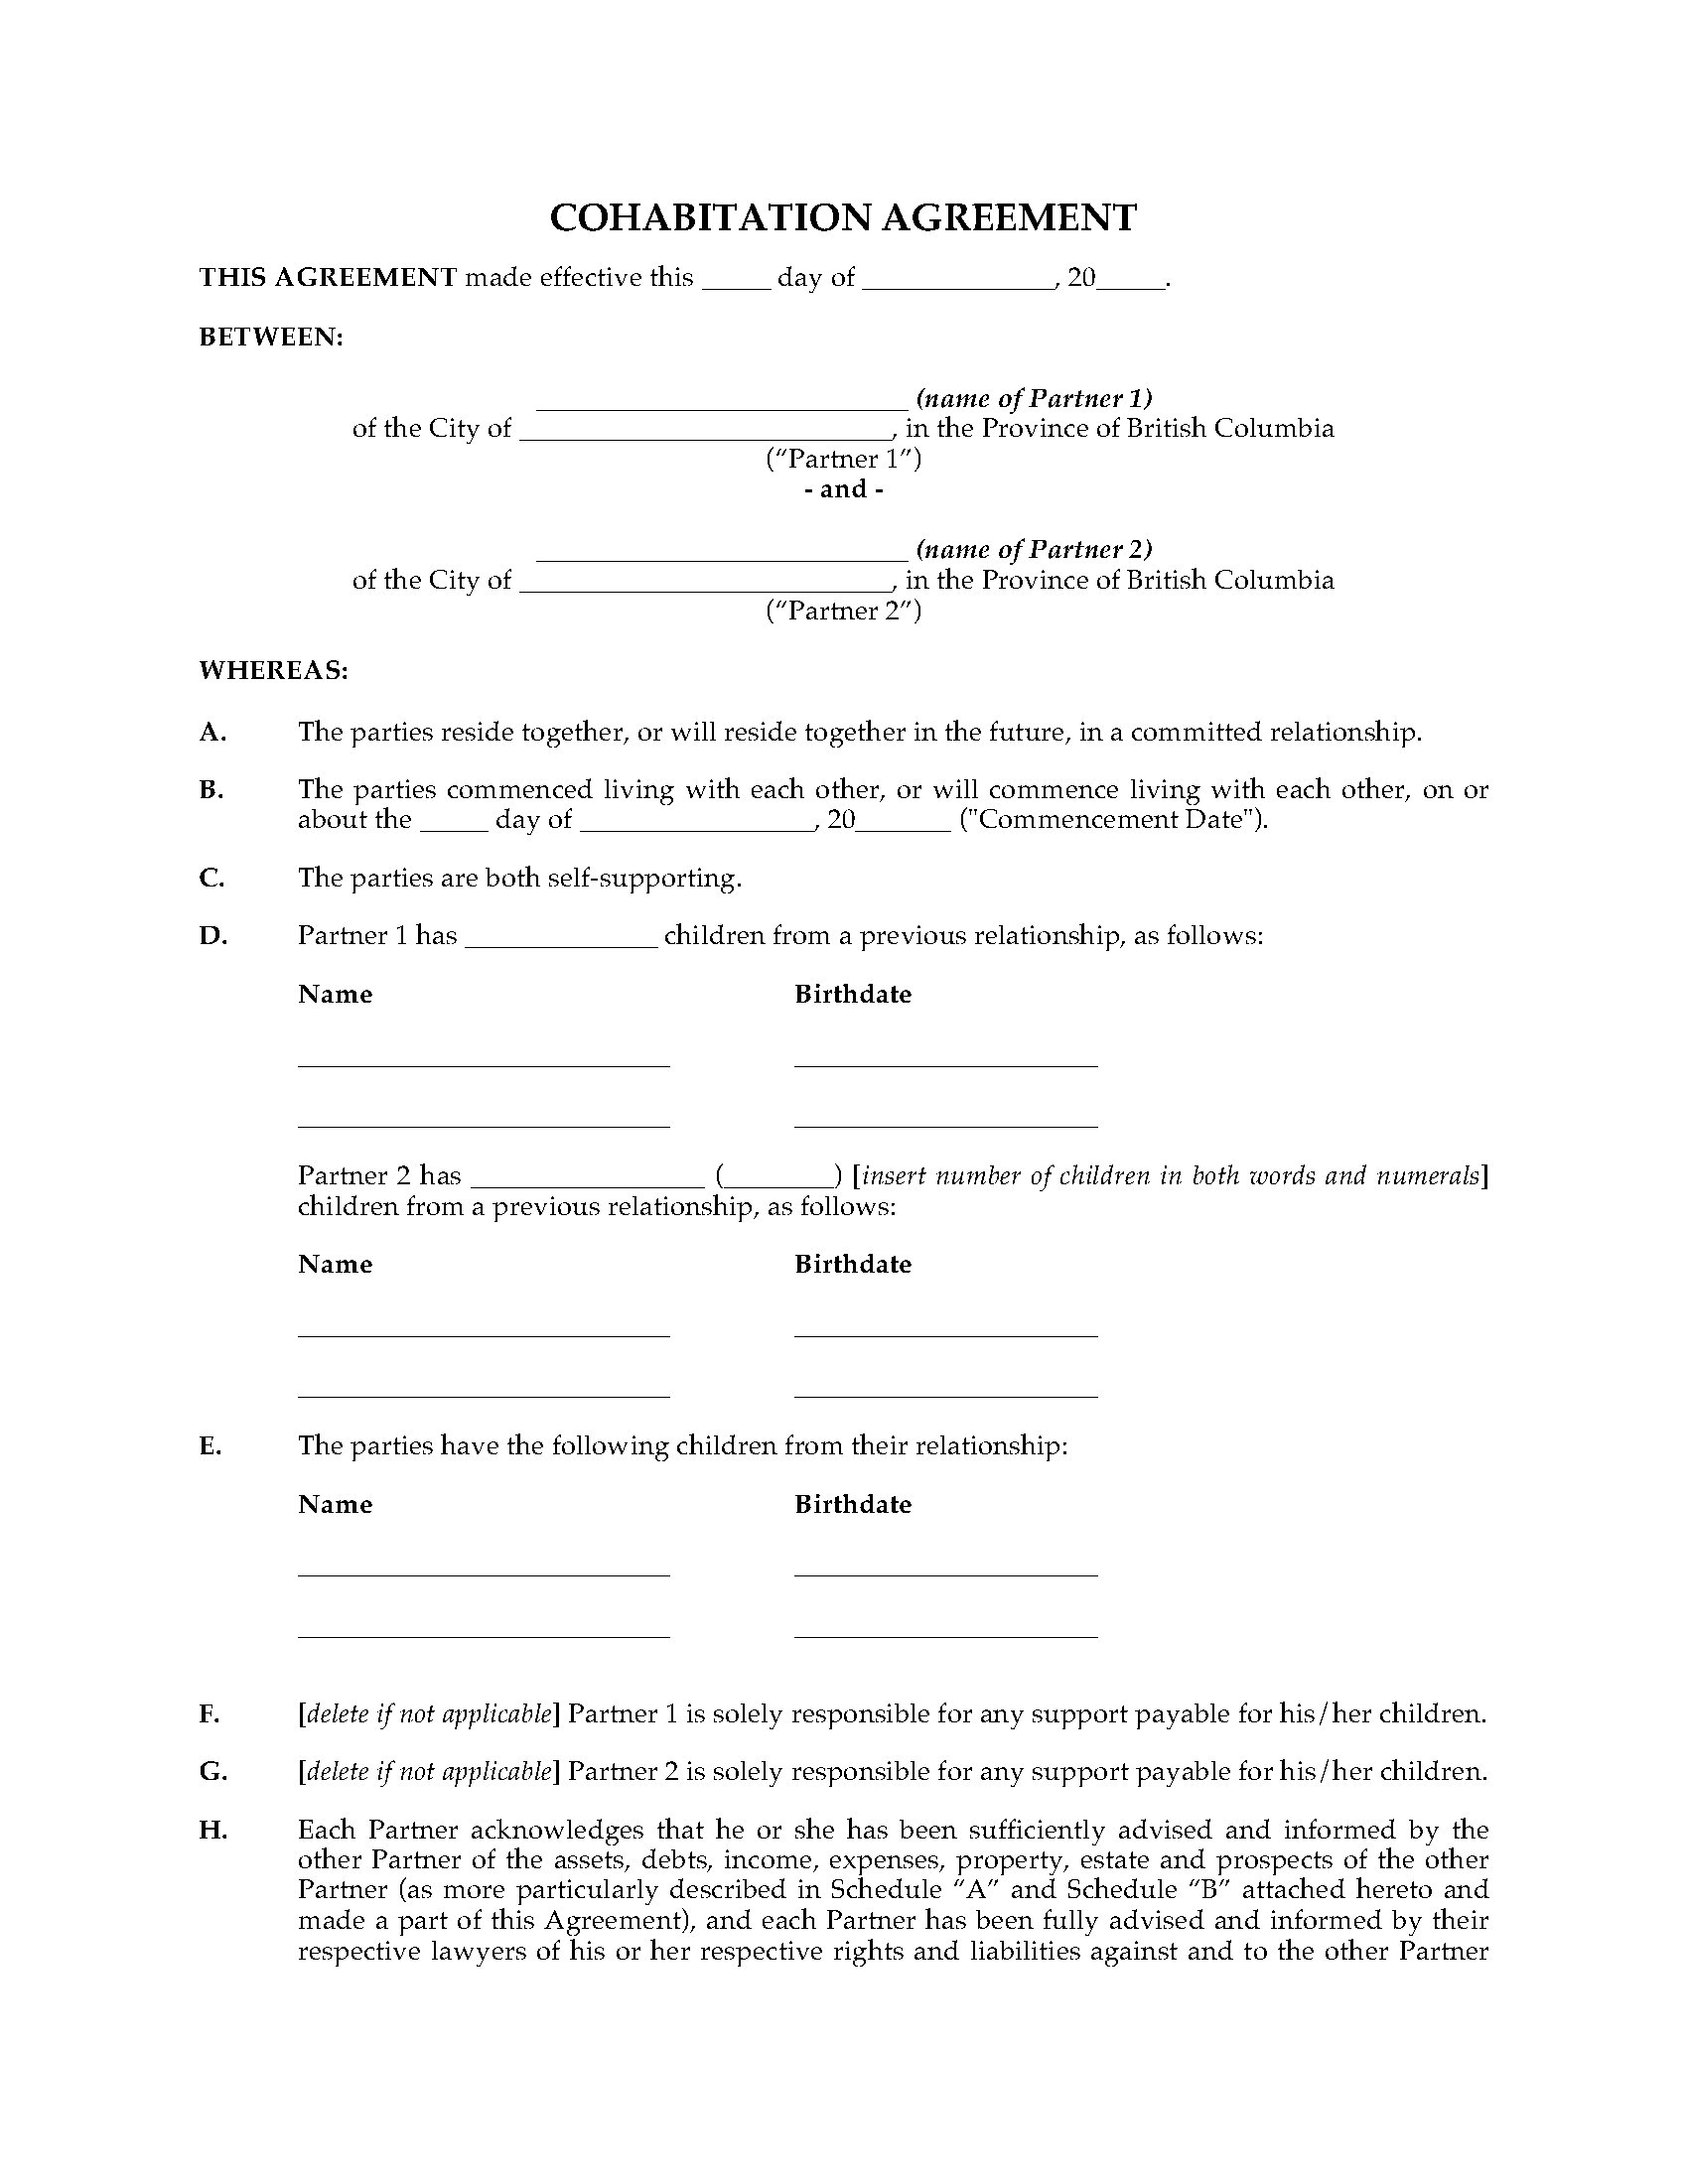 British Columbia Cohabitation Agreement Legal Forms And Business